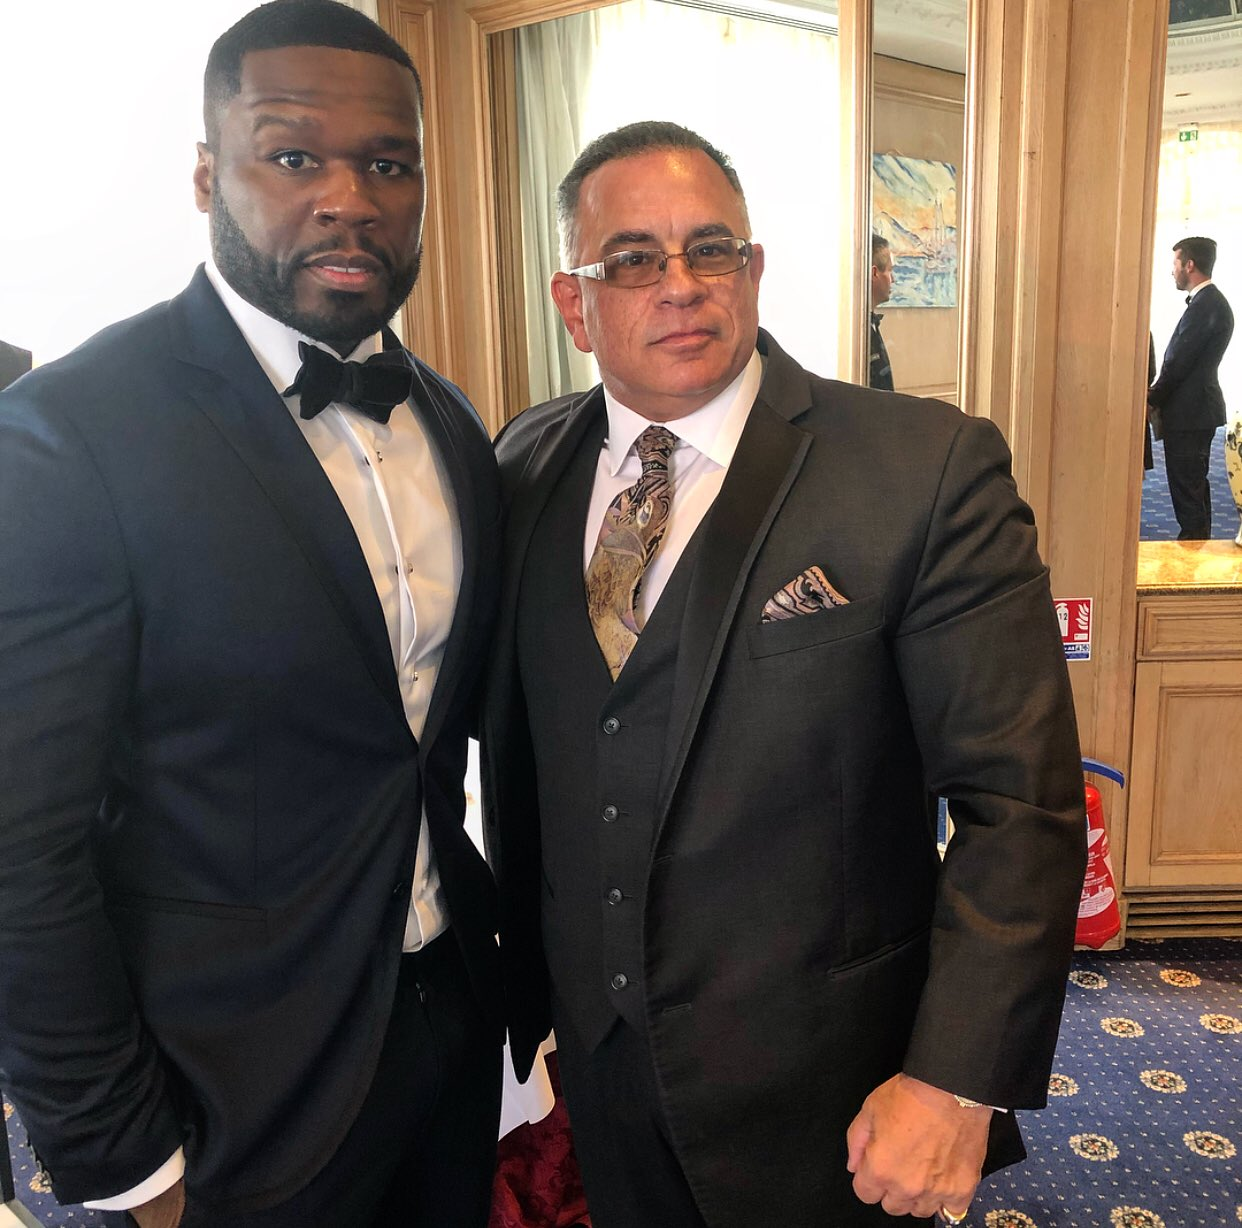 Speaking of Gotti, here's me and John Gotti https://t.co/AuumBSE175